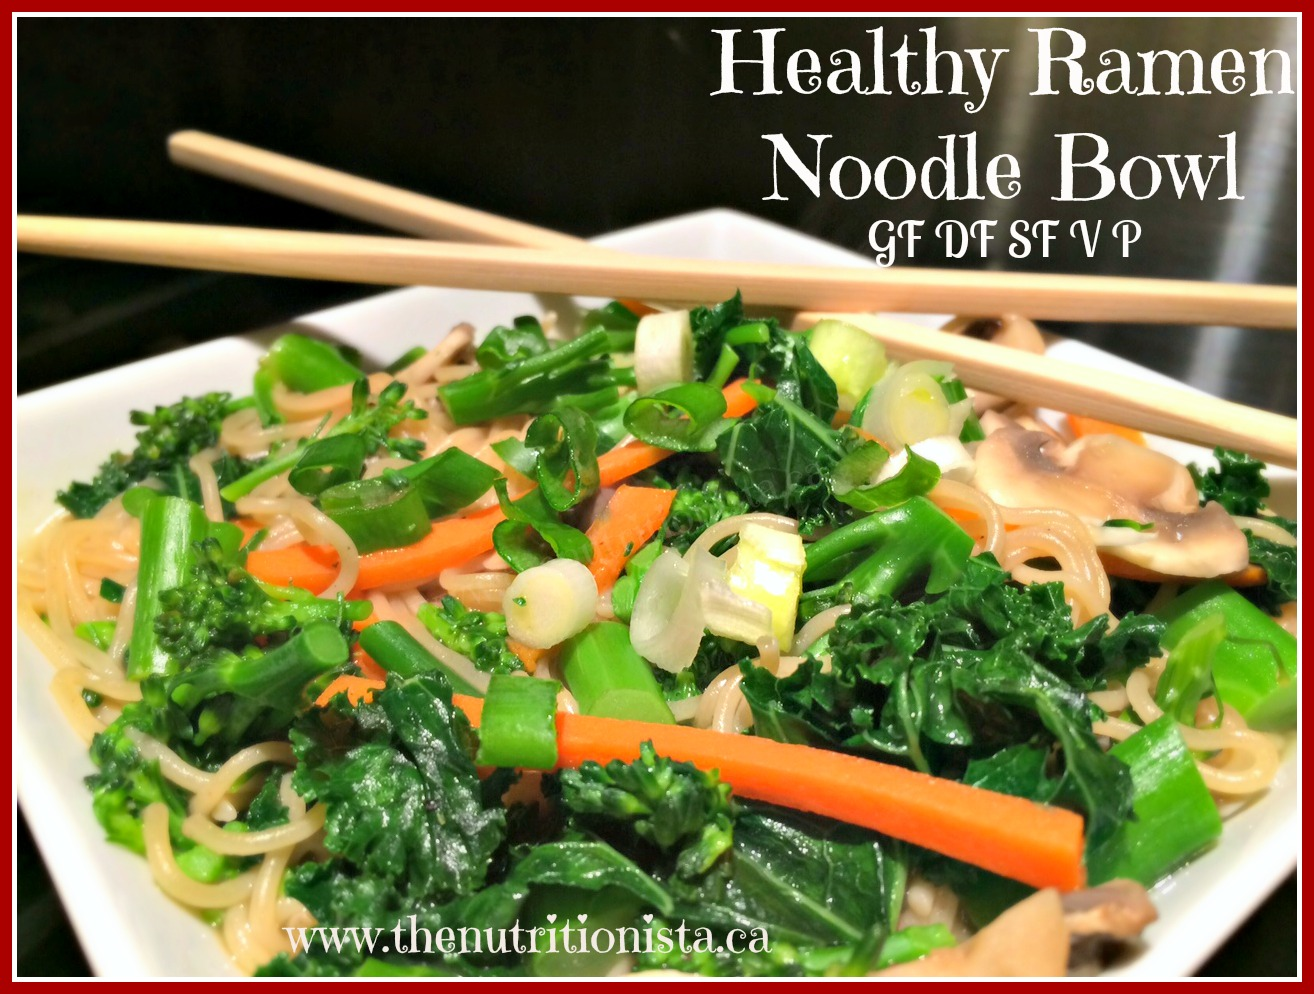 You need to try this healthy ramen noodle bowl! So delicious, but naturally gluten free, grain free, dairy free, soy free, low carb, vegan, and paleo.